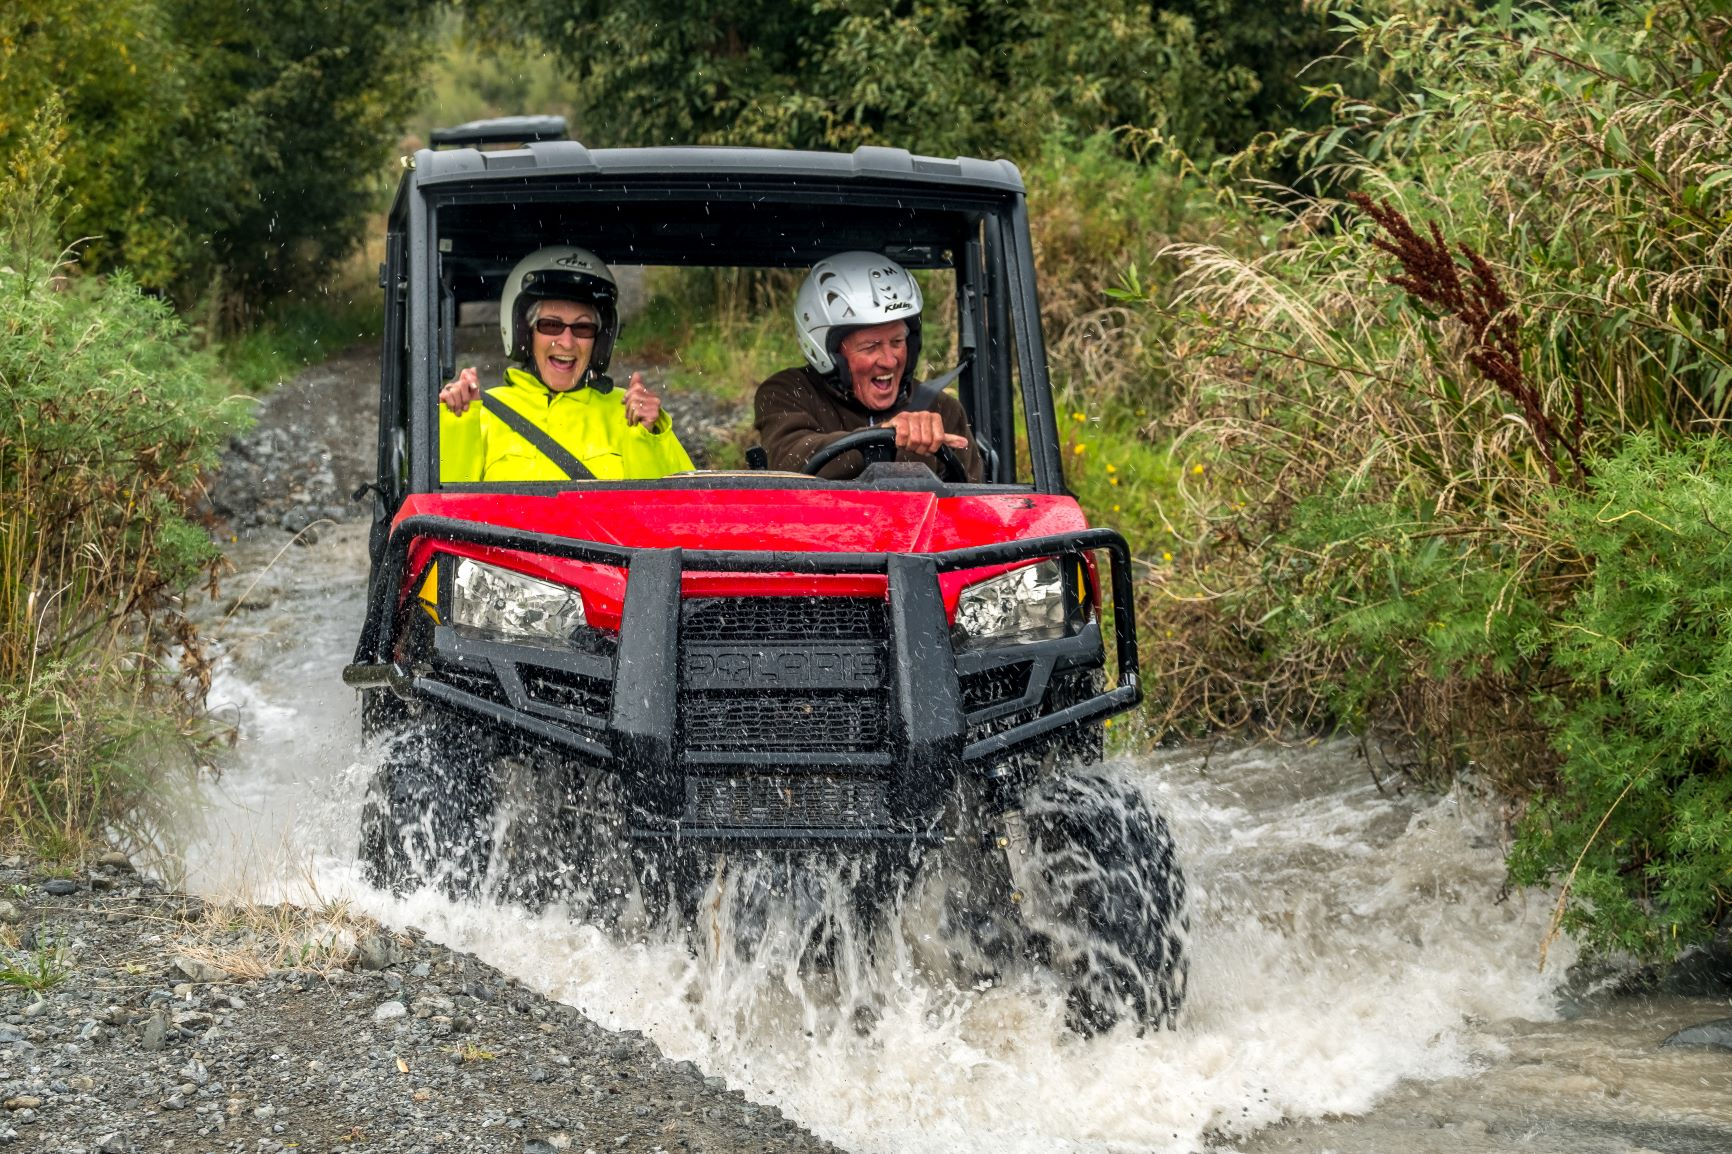 Couple on Hanmer Springs Attractions Off Road Buggy driving through a river